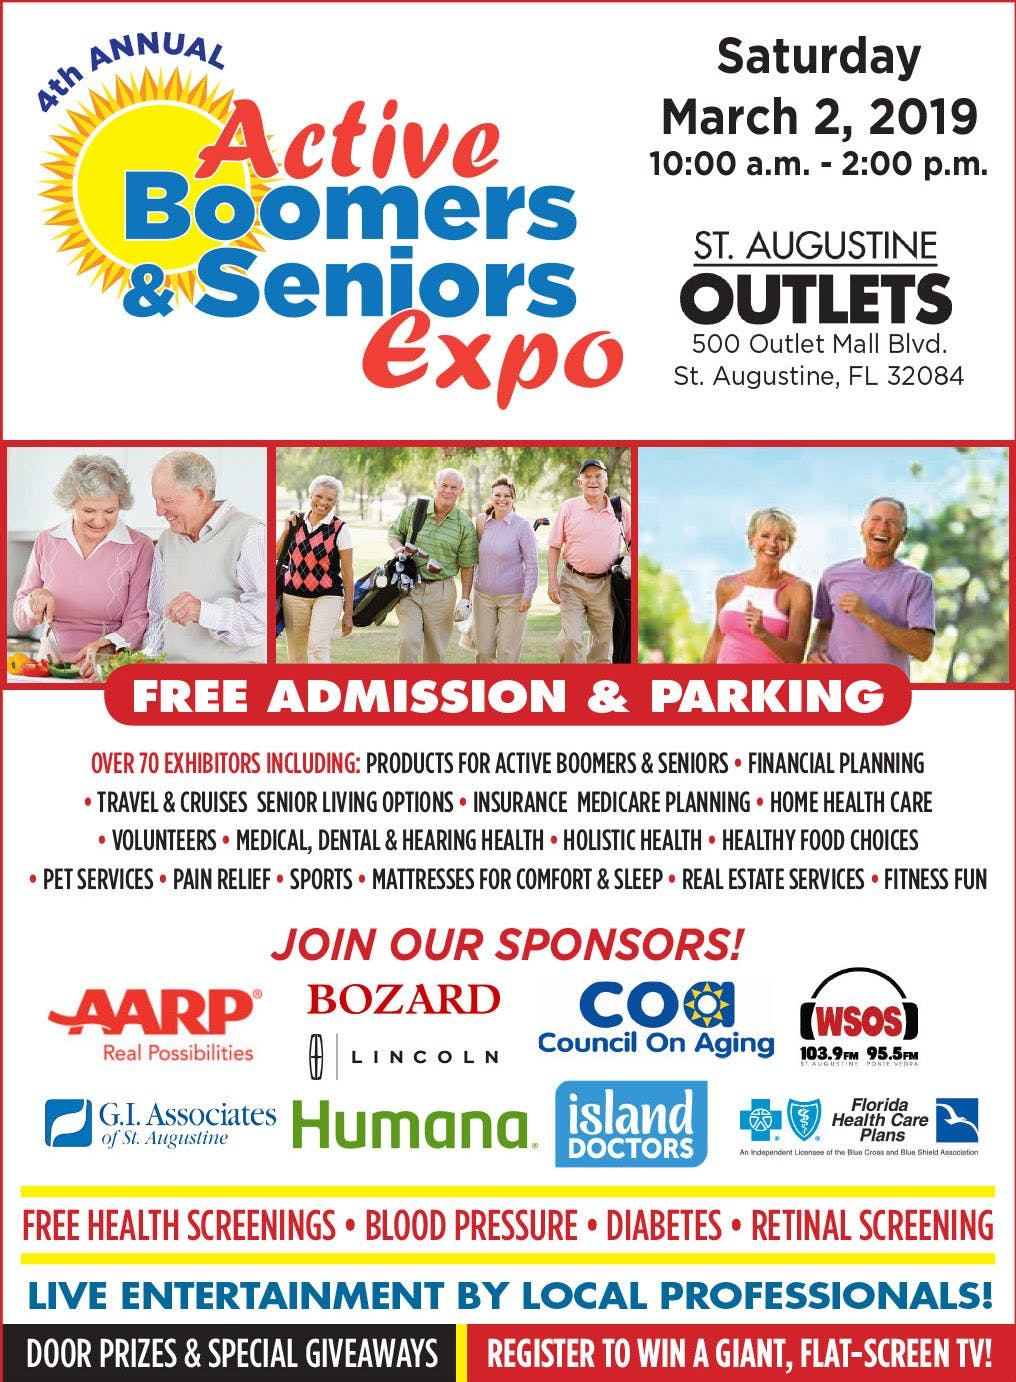 Active Boomers & Seniors Expo   Saturday, March 2, 2019   10:00 a.m. - 2:00 p.m.   St. Augustine Outlets   500 OUtlet Mall Blvd. St. Augustine, FL 32084